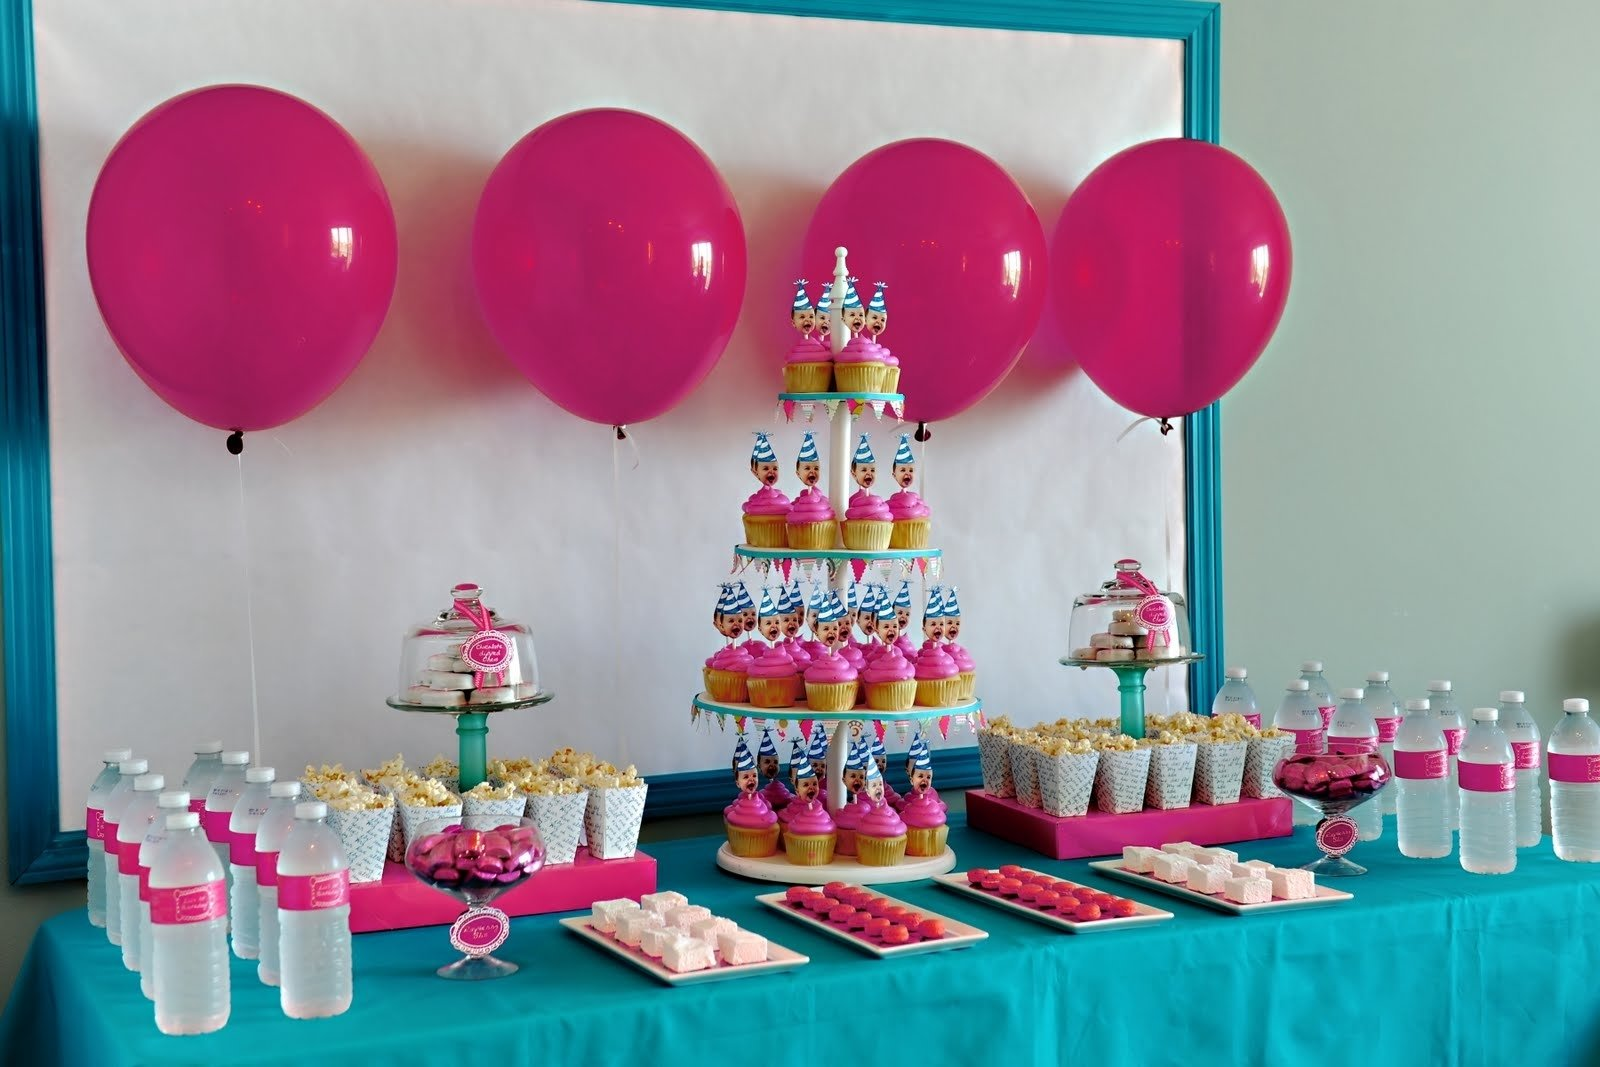 10 Attractive Kids Birthday Party Ideas Las Vegas themes birthday 2 year old birthday party ideas houston together 2 2020